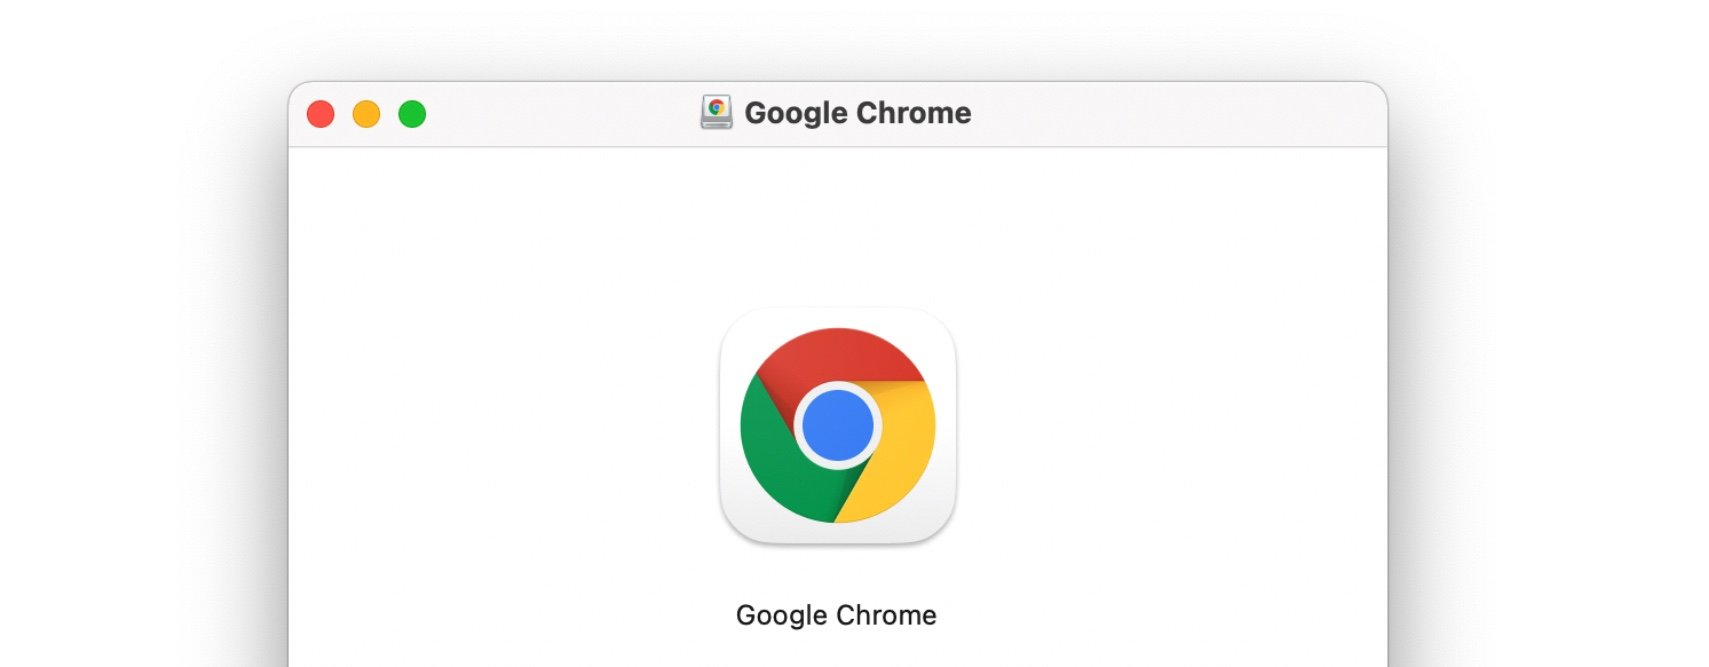 Google Chrome will add copy and paste functionality to PC